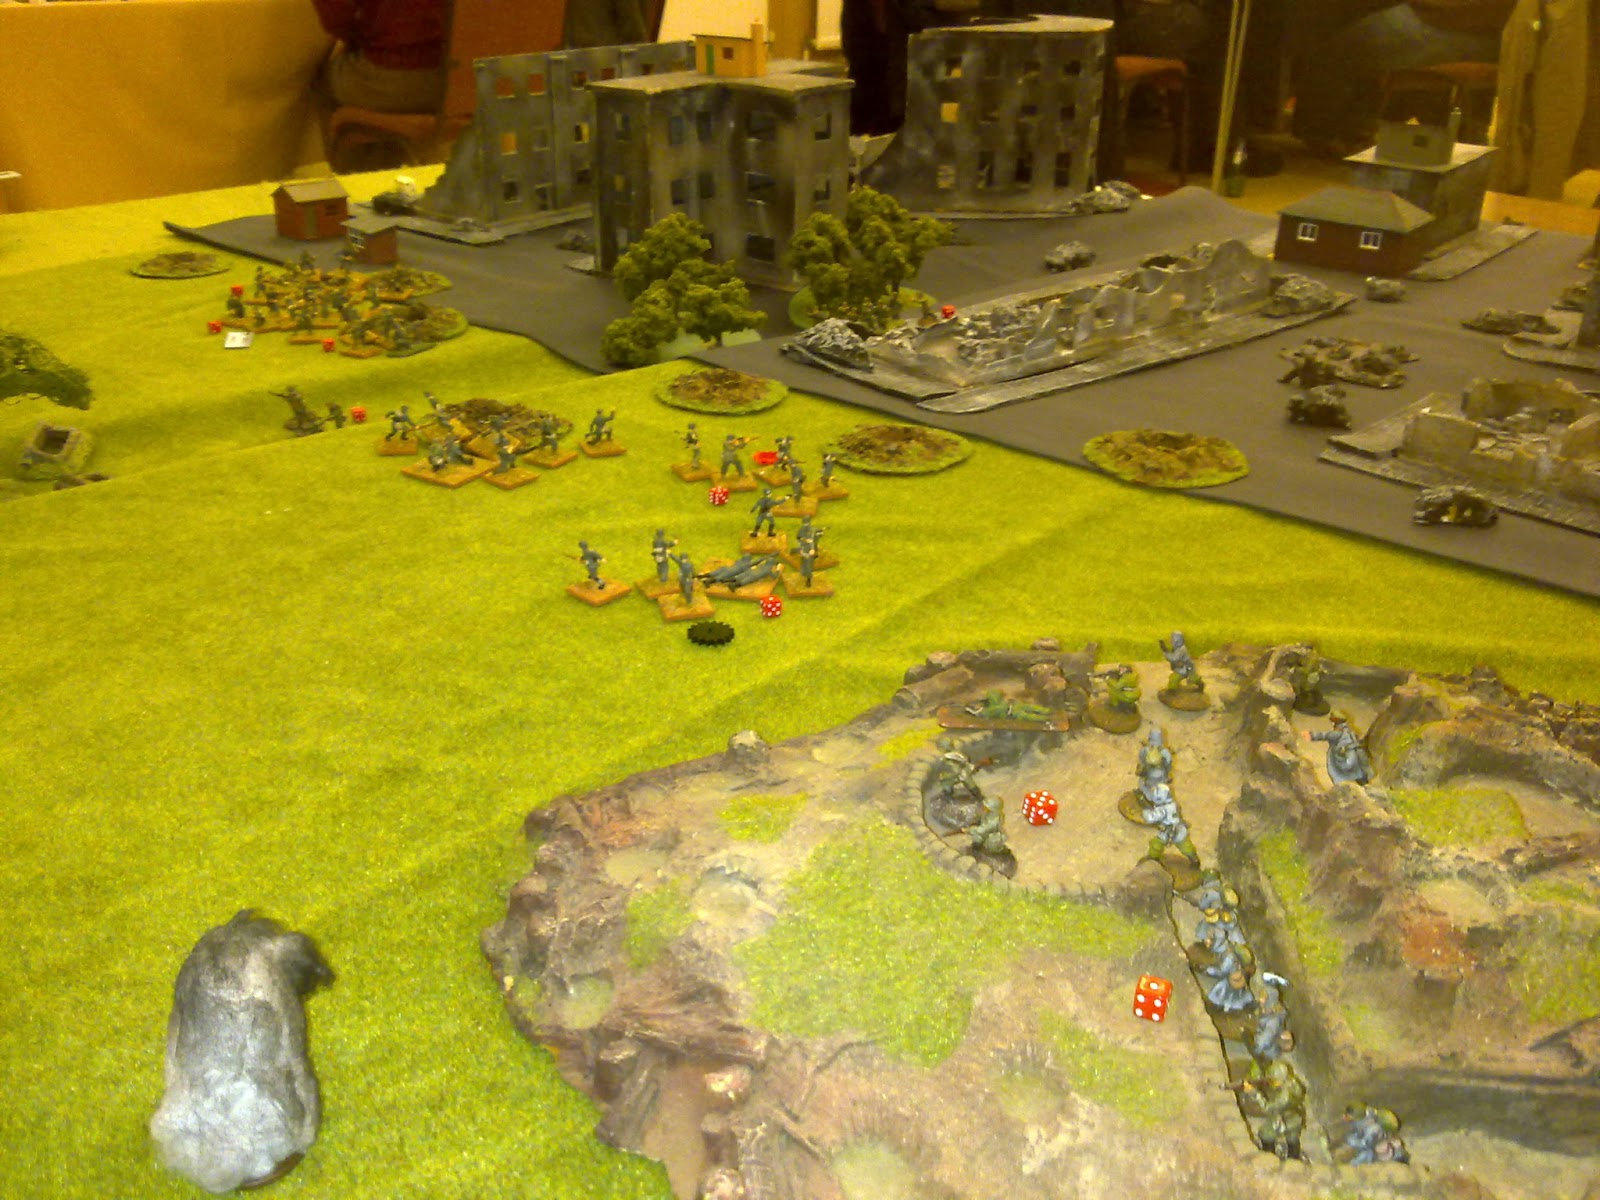 1st Platoon starts to take casualties and shock